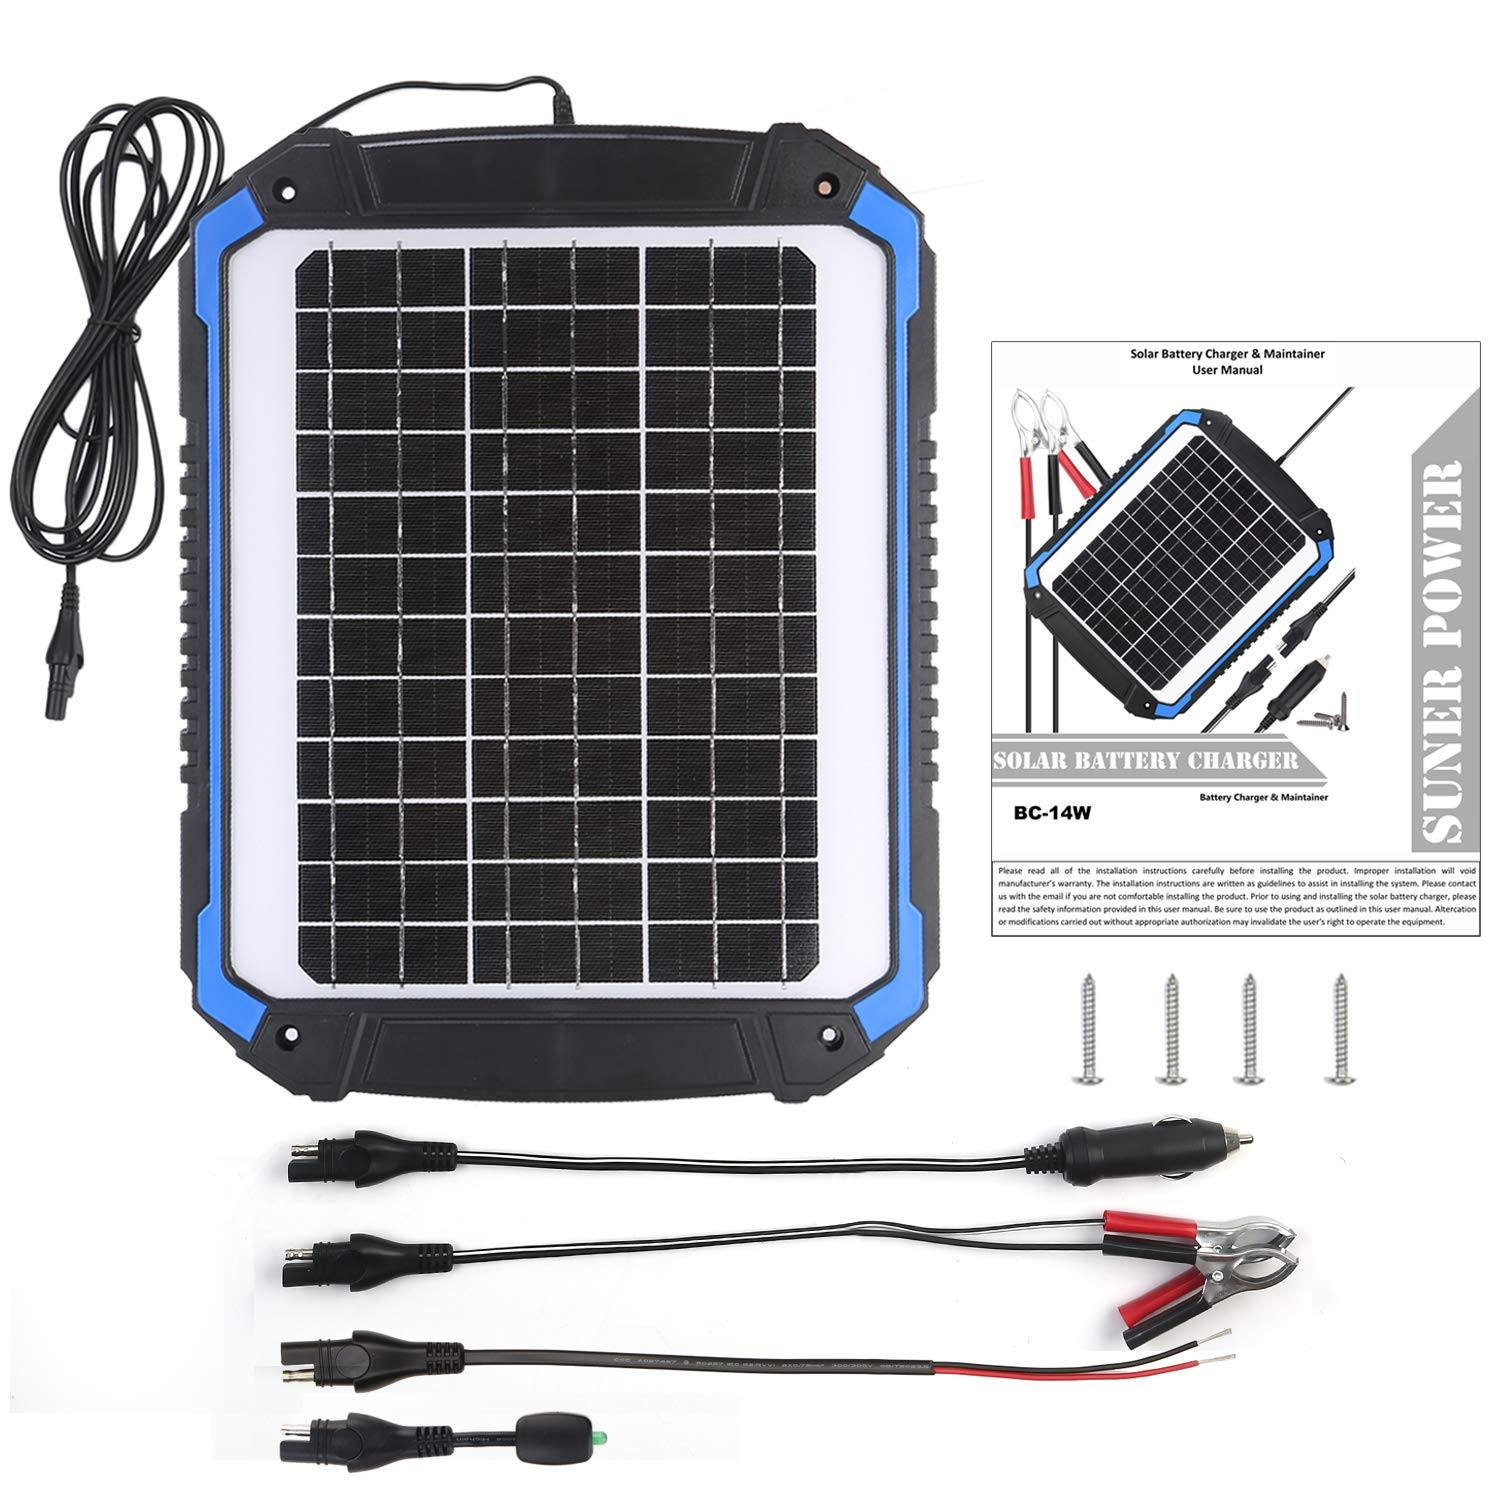 Boat Snowmobile Trailer Portable 14W Solar Panel Trickle Charging Kit for Automotive Marine Powersports SUNER POWER 12V Solar Car Battery Charger /& Maintainer Motorcycle RV etc.